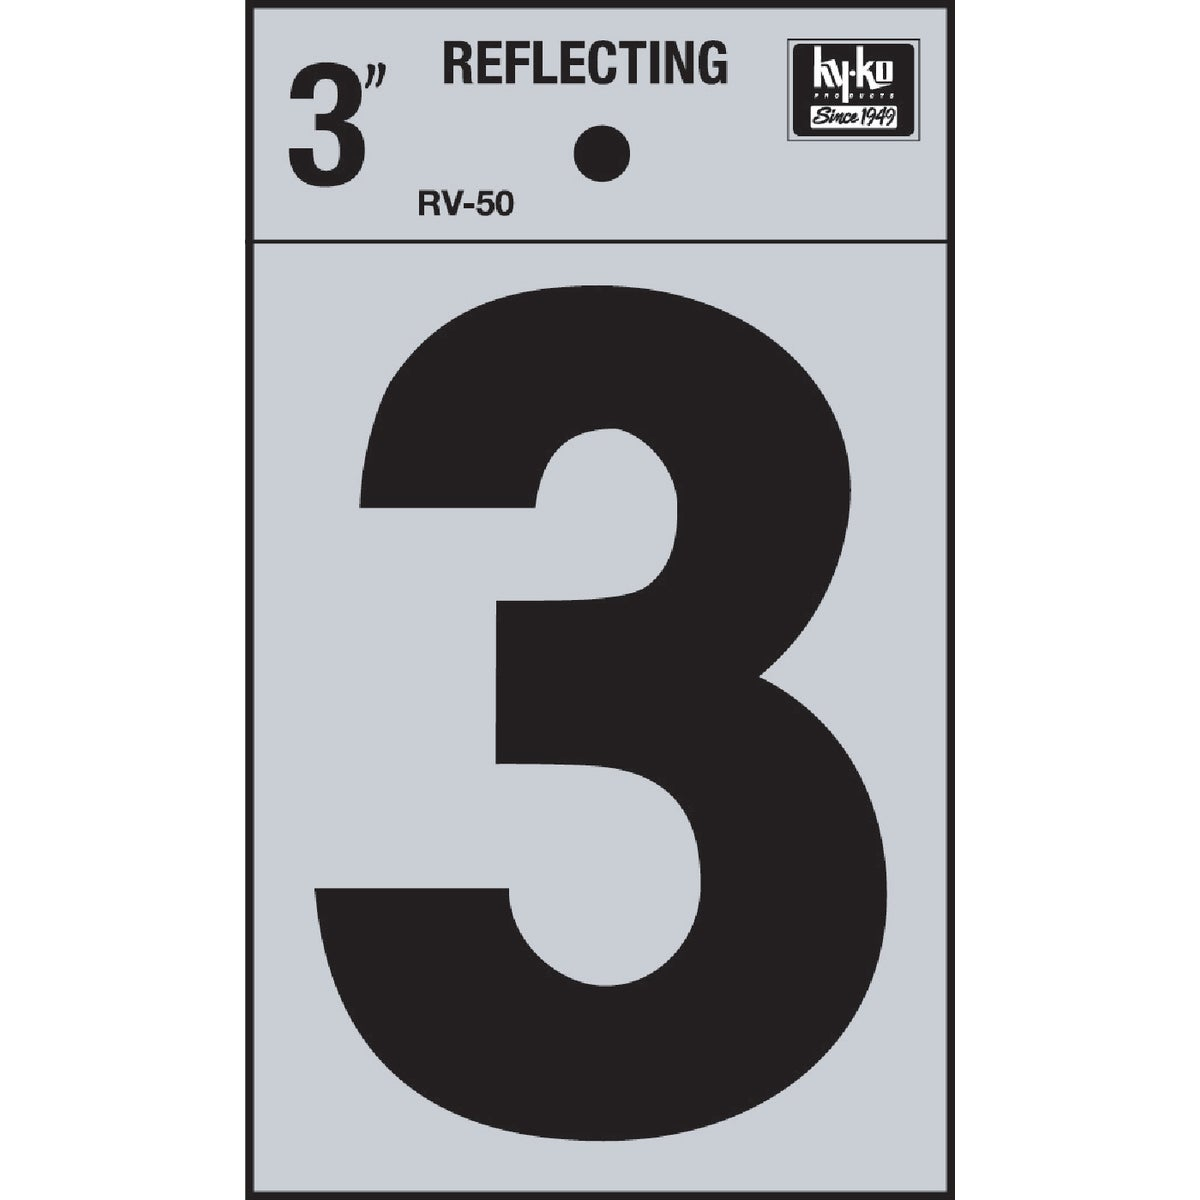 "3"" REFLECT NUMBER 3 - RV-50-3 by Hy Ko Prods Co"